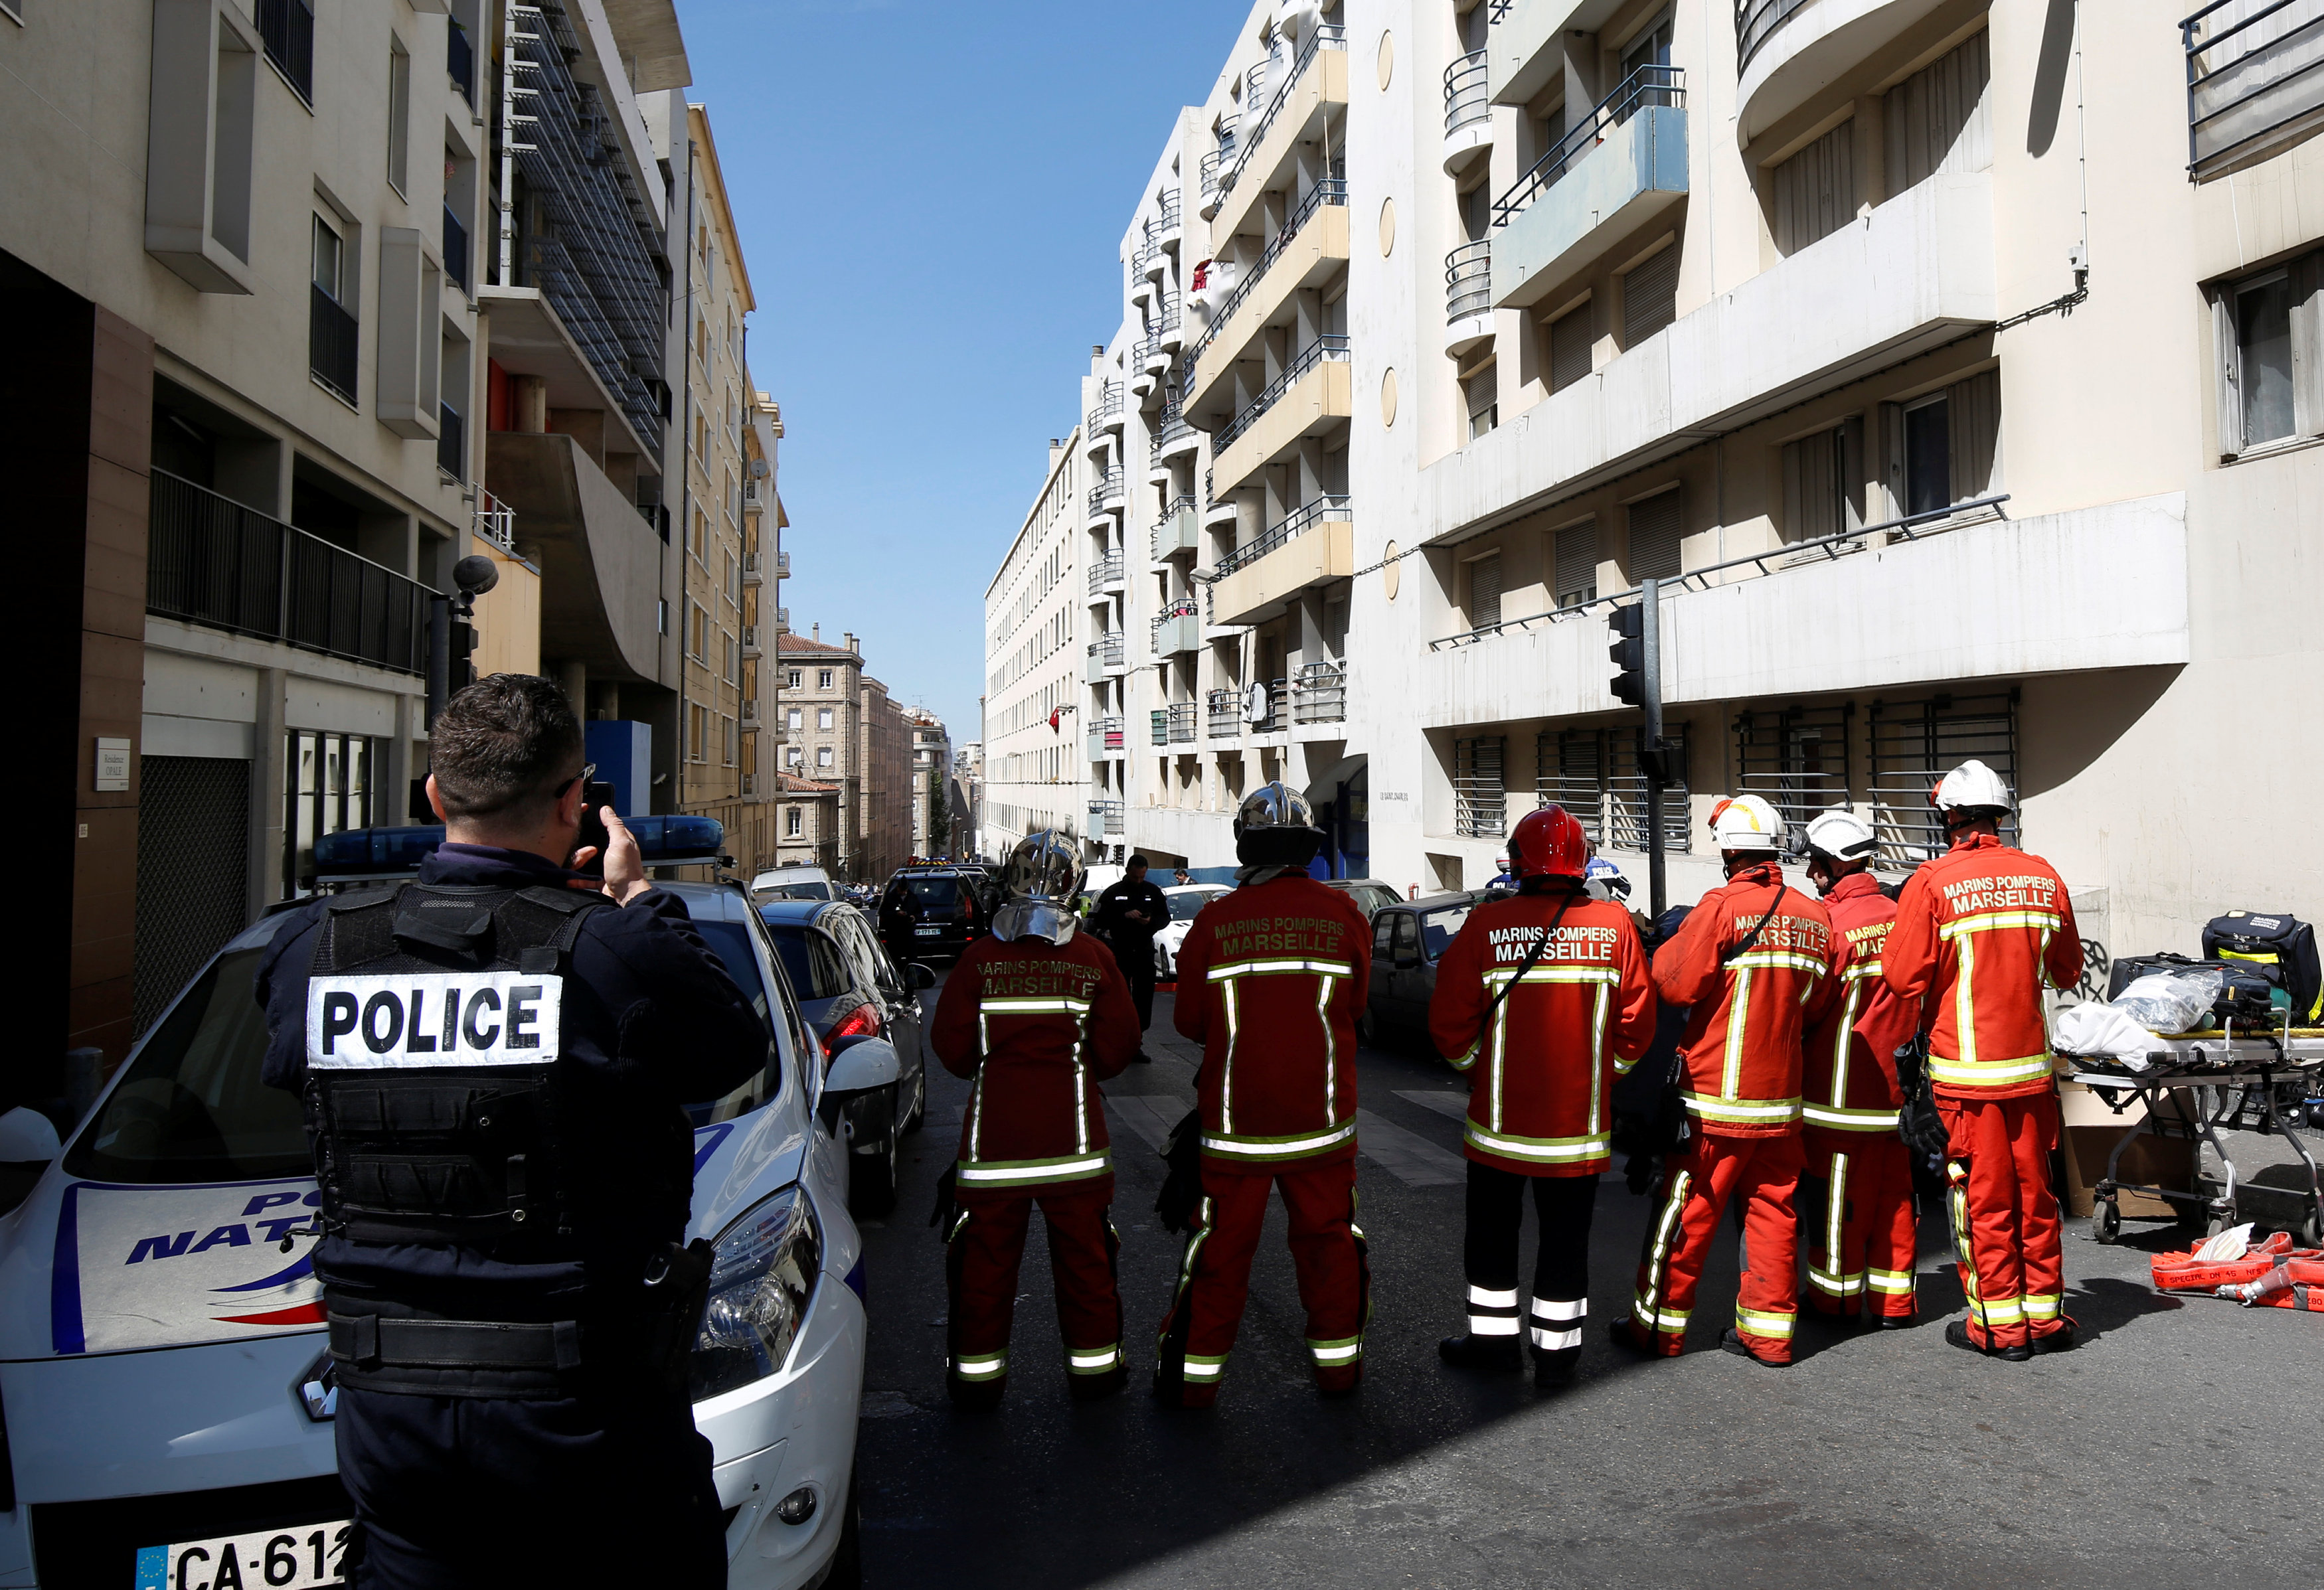 """French firefighters secure the street as police conduct an investigation after two Frenchmen were arrested in Marseille, France, April 18, 2017 for planning to carry out an """"imminent and violent attack"""" ahead of the first round of the presidential election on Sunday, France's interior minister said. REUTERS/Philippe Laurenson"""